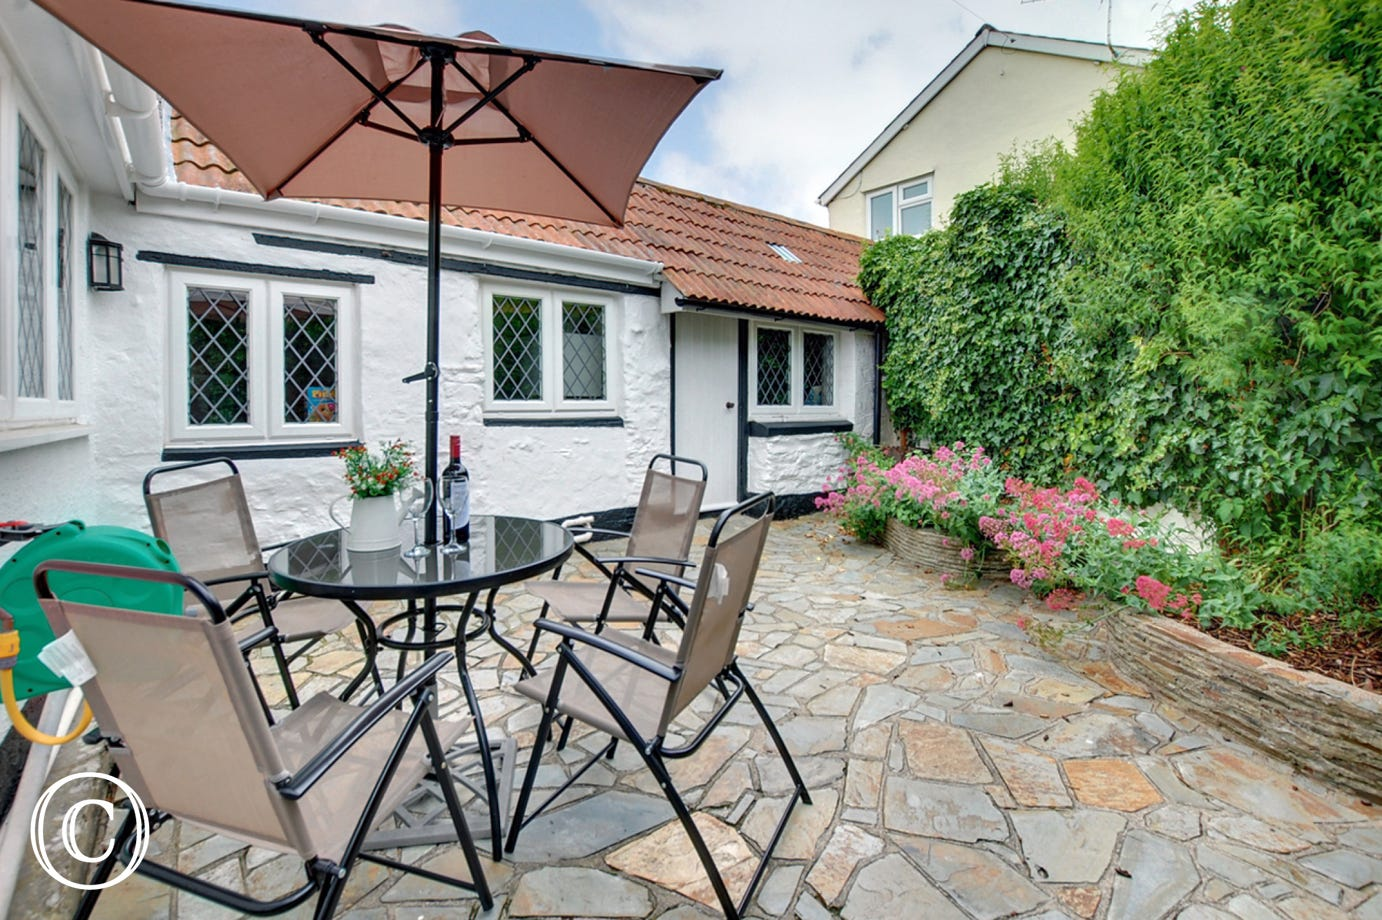 The cottage has an enclosed garden which is ideal for your pet